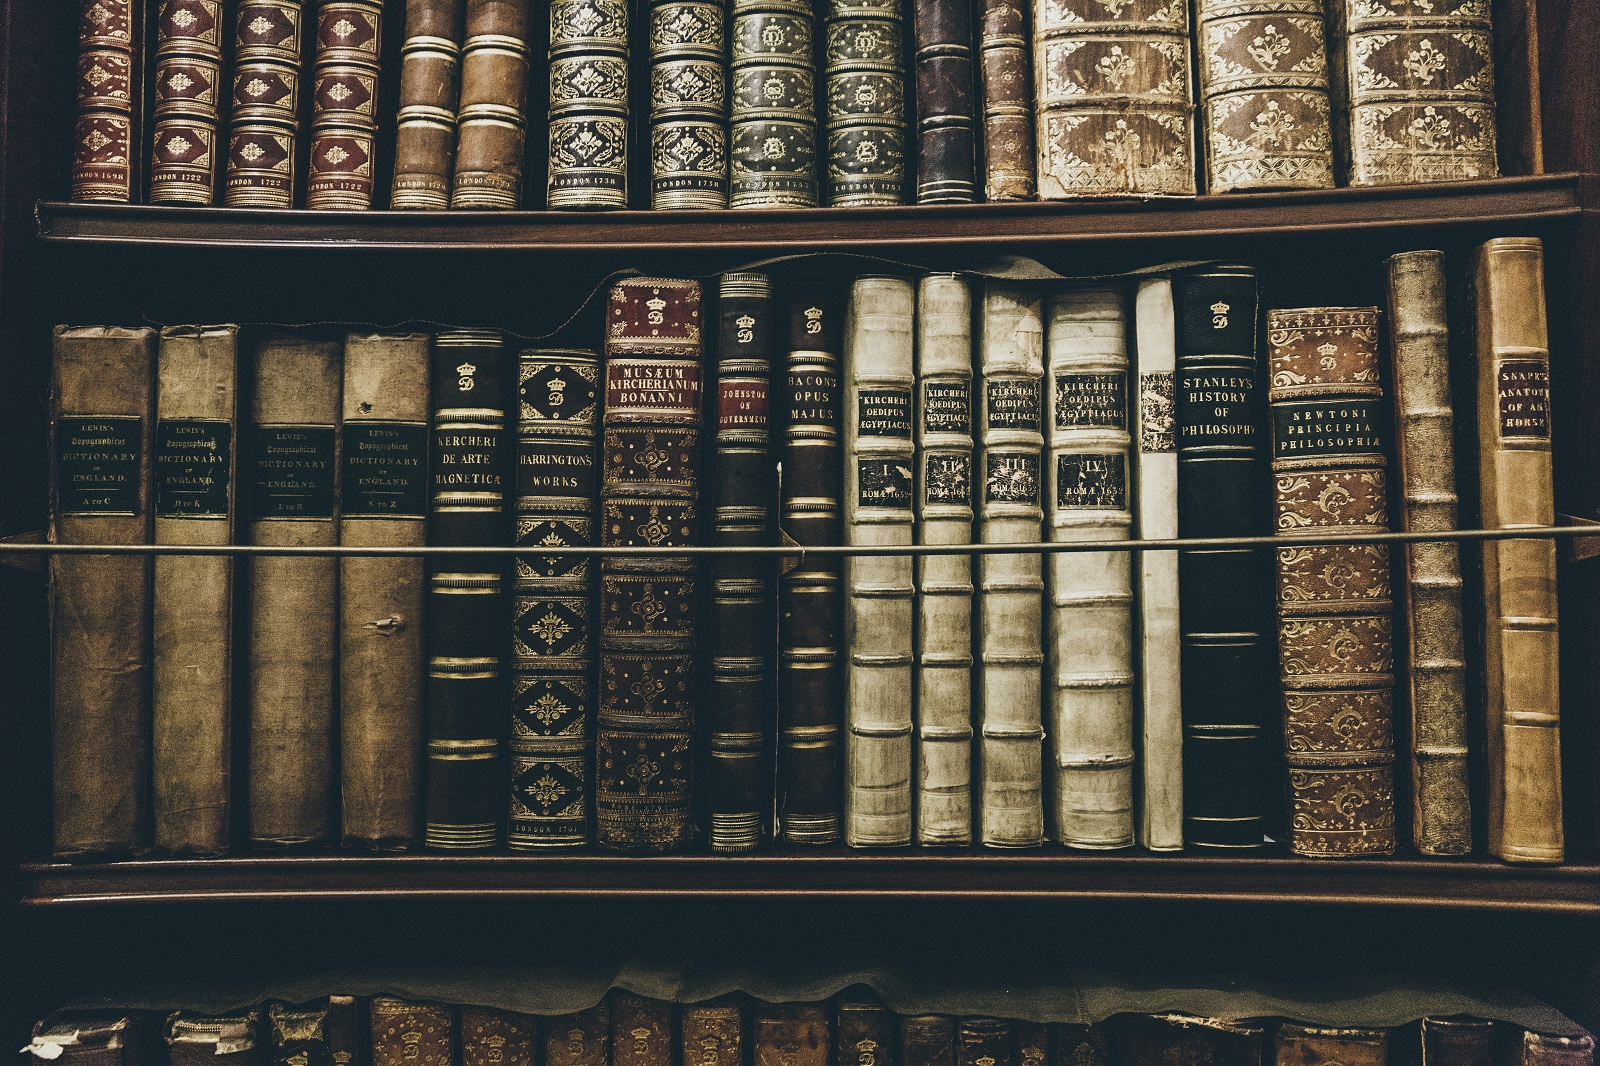 Old books lined up on a bookshelf